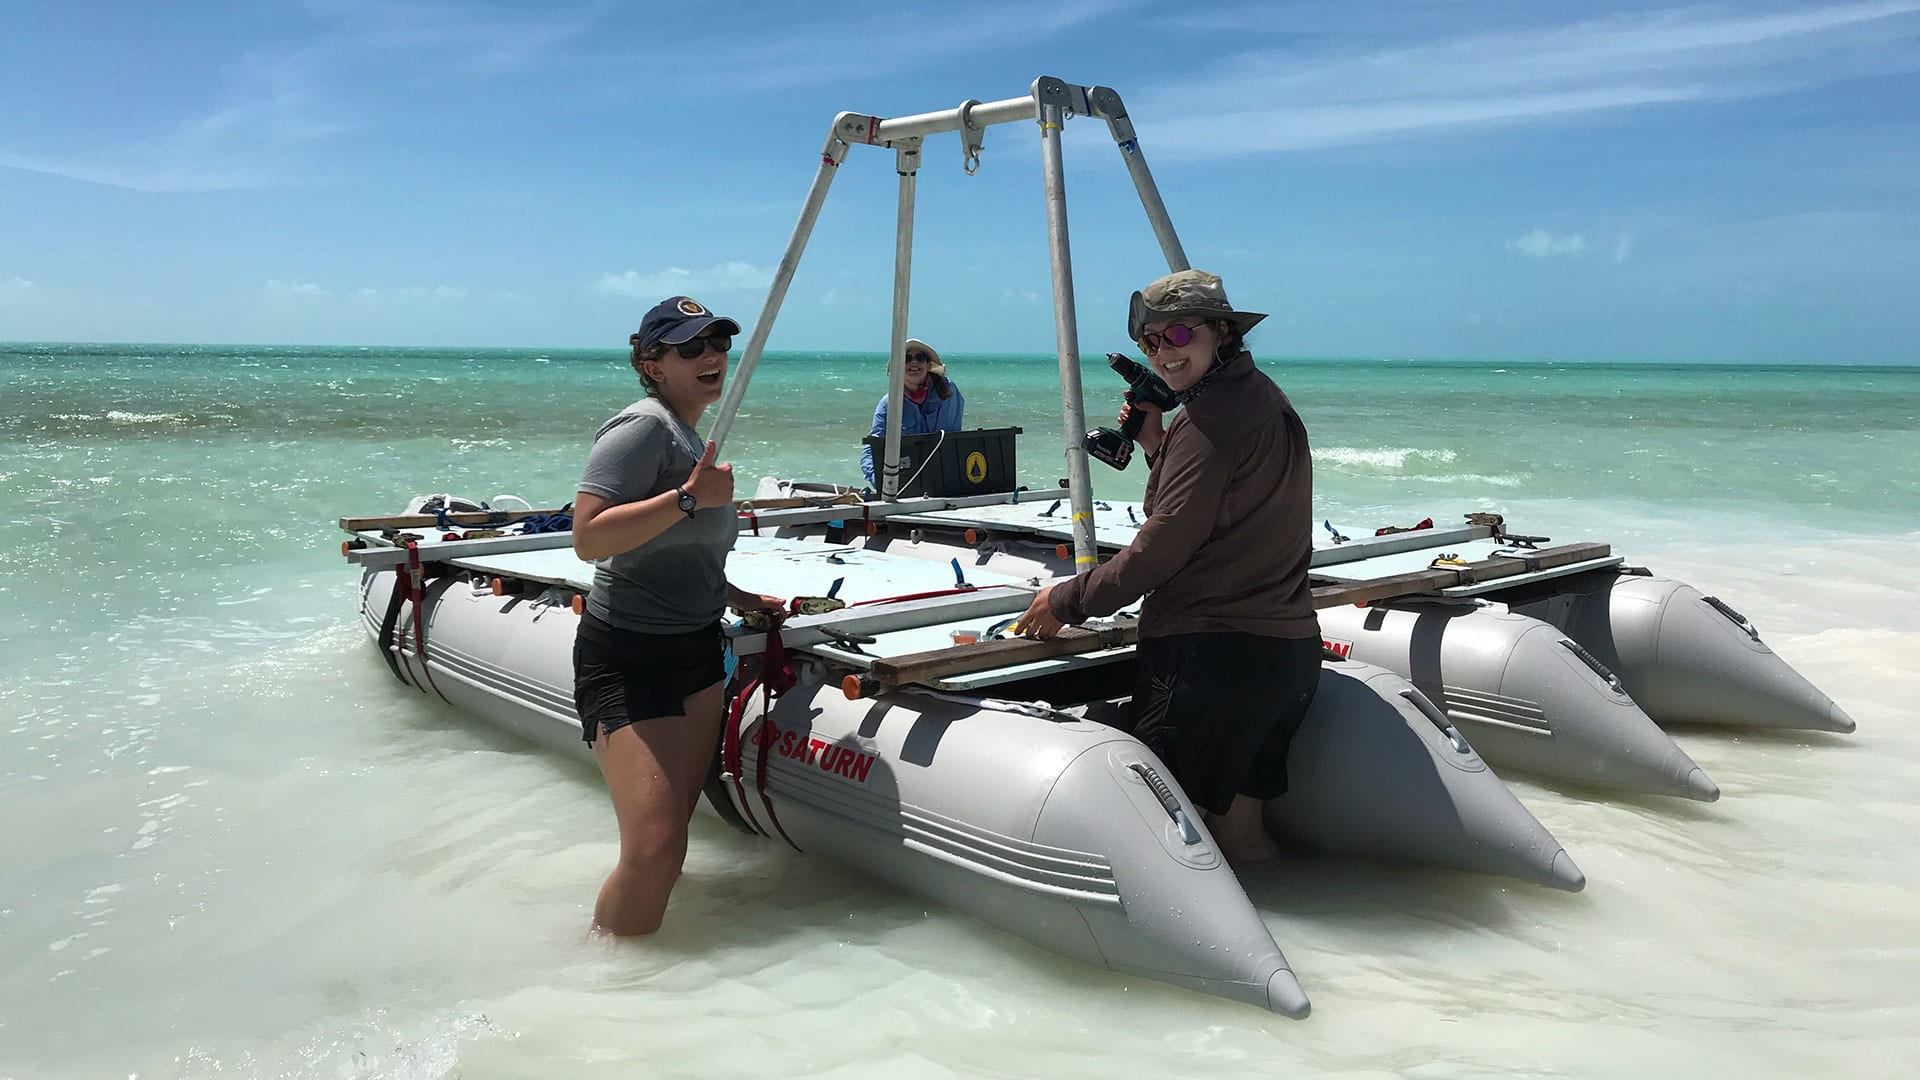 WHOI researchers Lizzy Soranna (front left), Lizzie Wallace (front right), and Nicole D'Entremont head out to conduct hurricane research in an azure-colored marine sinkhole—formally known as a blue hole—off Caicos Island in the Caribbean. They collected sediment samples from the bottom of the hole to learn more about the characteristics of Hurricane Irma, a Category 5 storm that passed over the area in early September of 2017. (Photo by Rose Palermo, Woods Hole Oceanographic Institution).